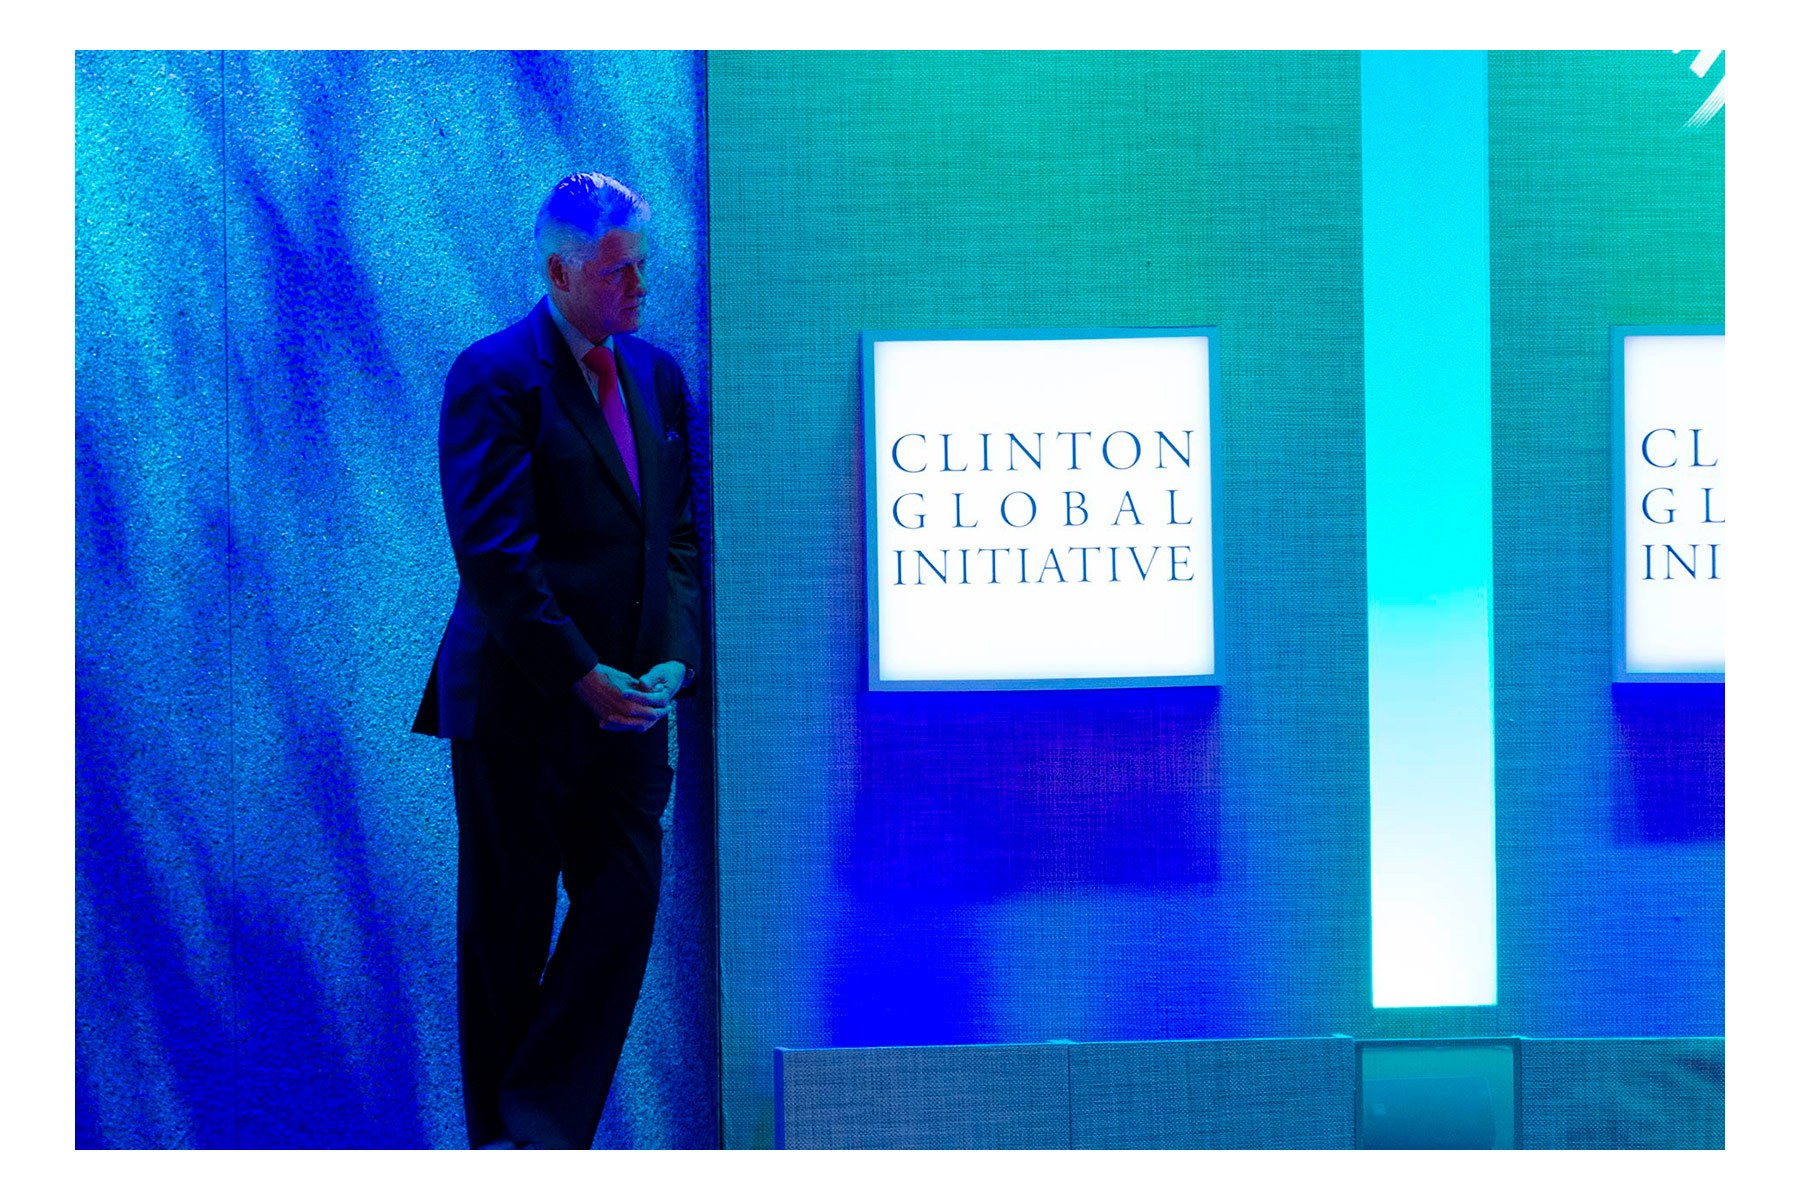 President Barack Obama, 44th President of the United States; Clinton Global Initiative 2011; 09-21-2011